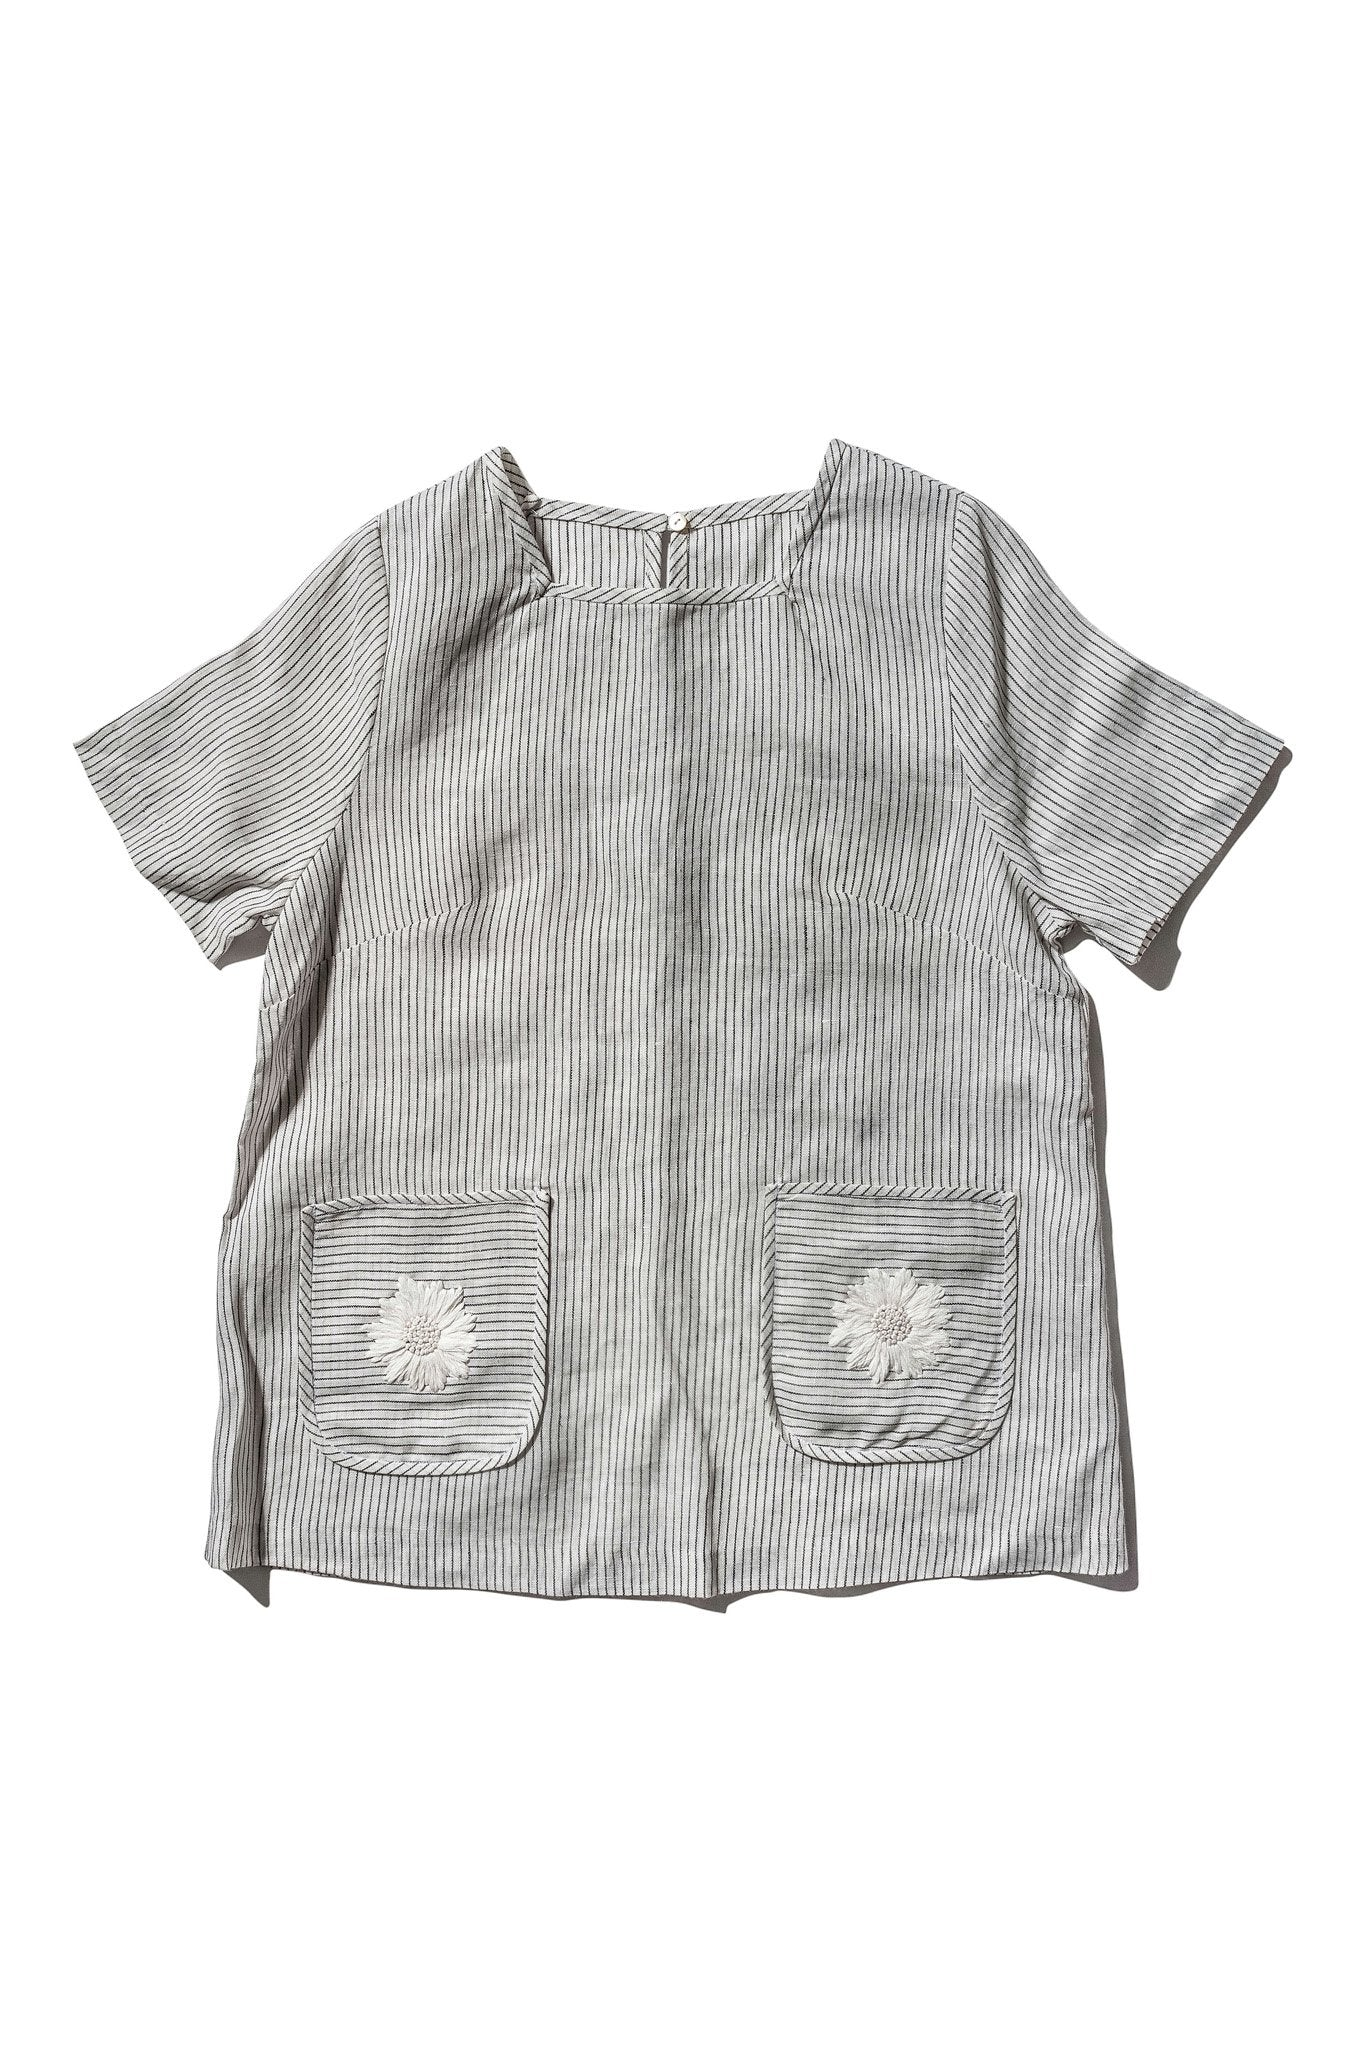 Hand Embroidered Daisy Box Blouse - Mary Laaf Little Stripe